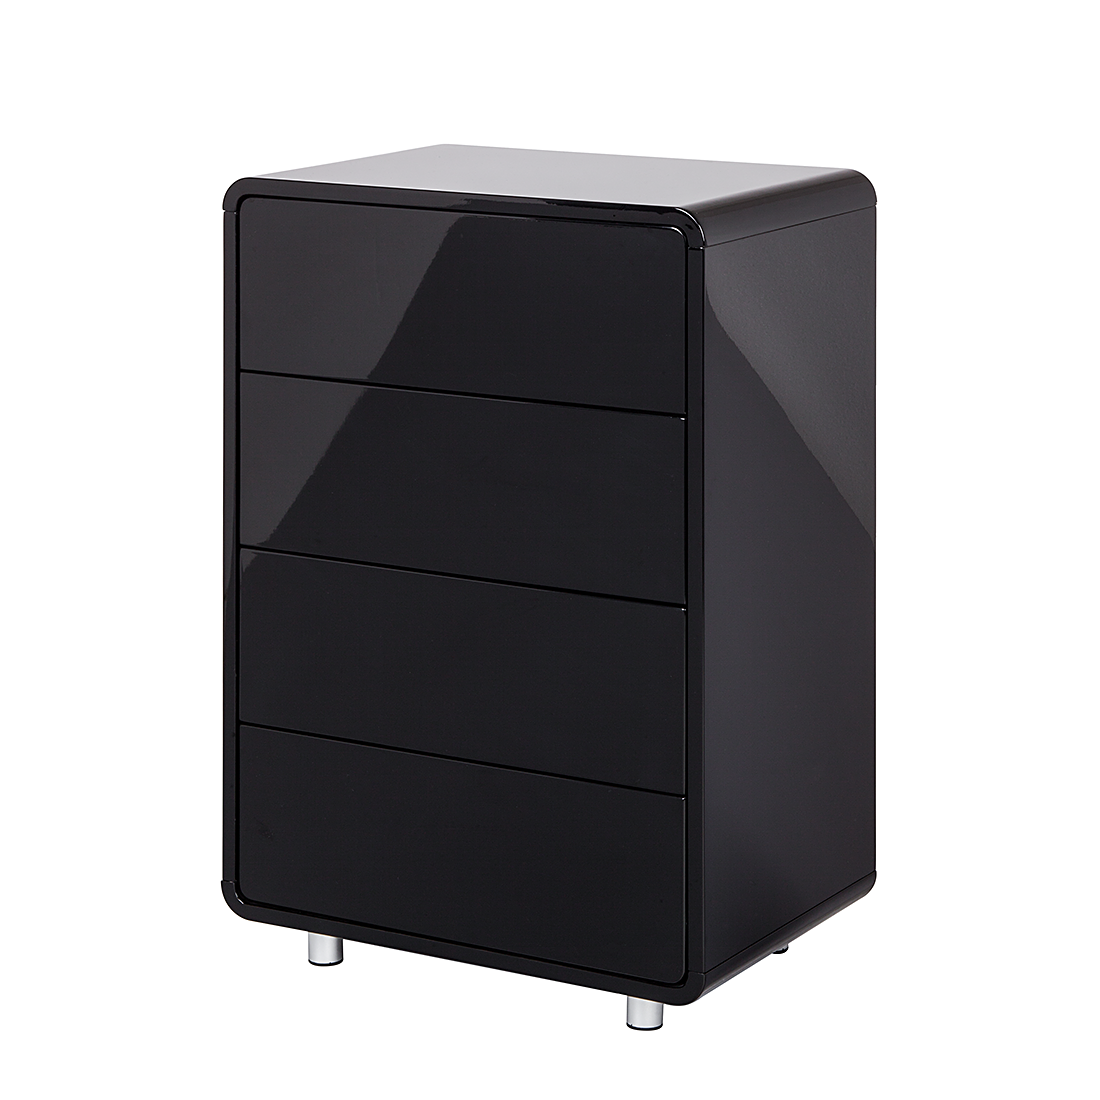 kommode 4 schubladen mdf schwarz hochglanz retro anrichte. Black Bedroom Furniture Sets. Home Design Ideas